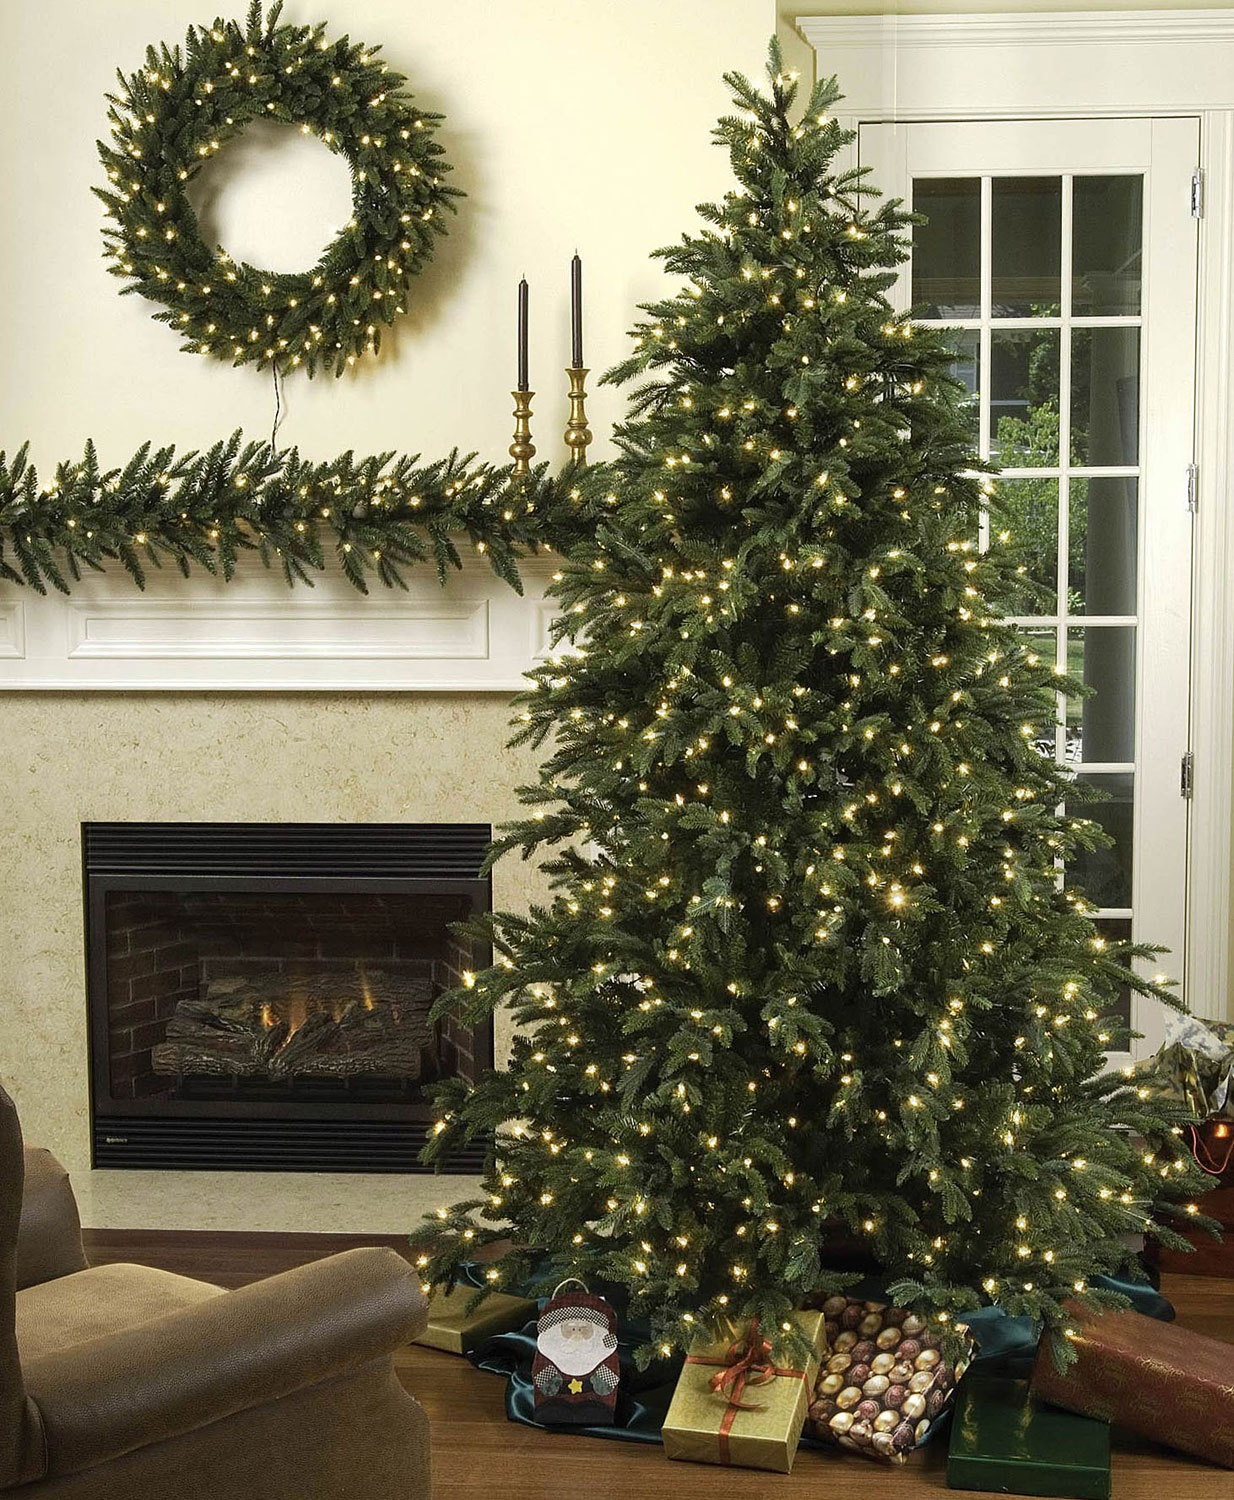 6.5' Full Carolina Fir Tree, 700 Multicolored Lamps